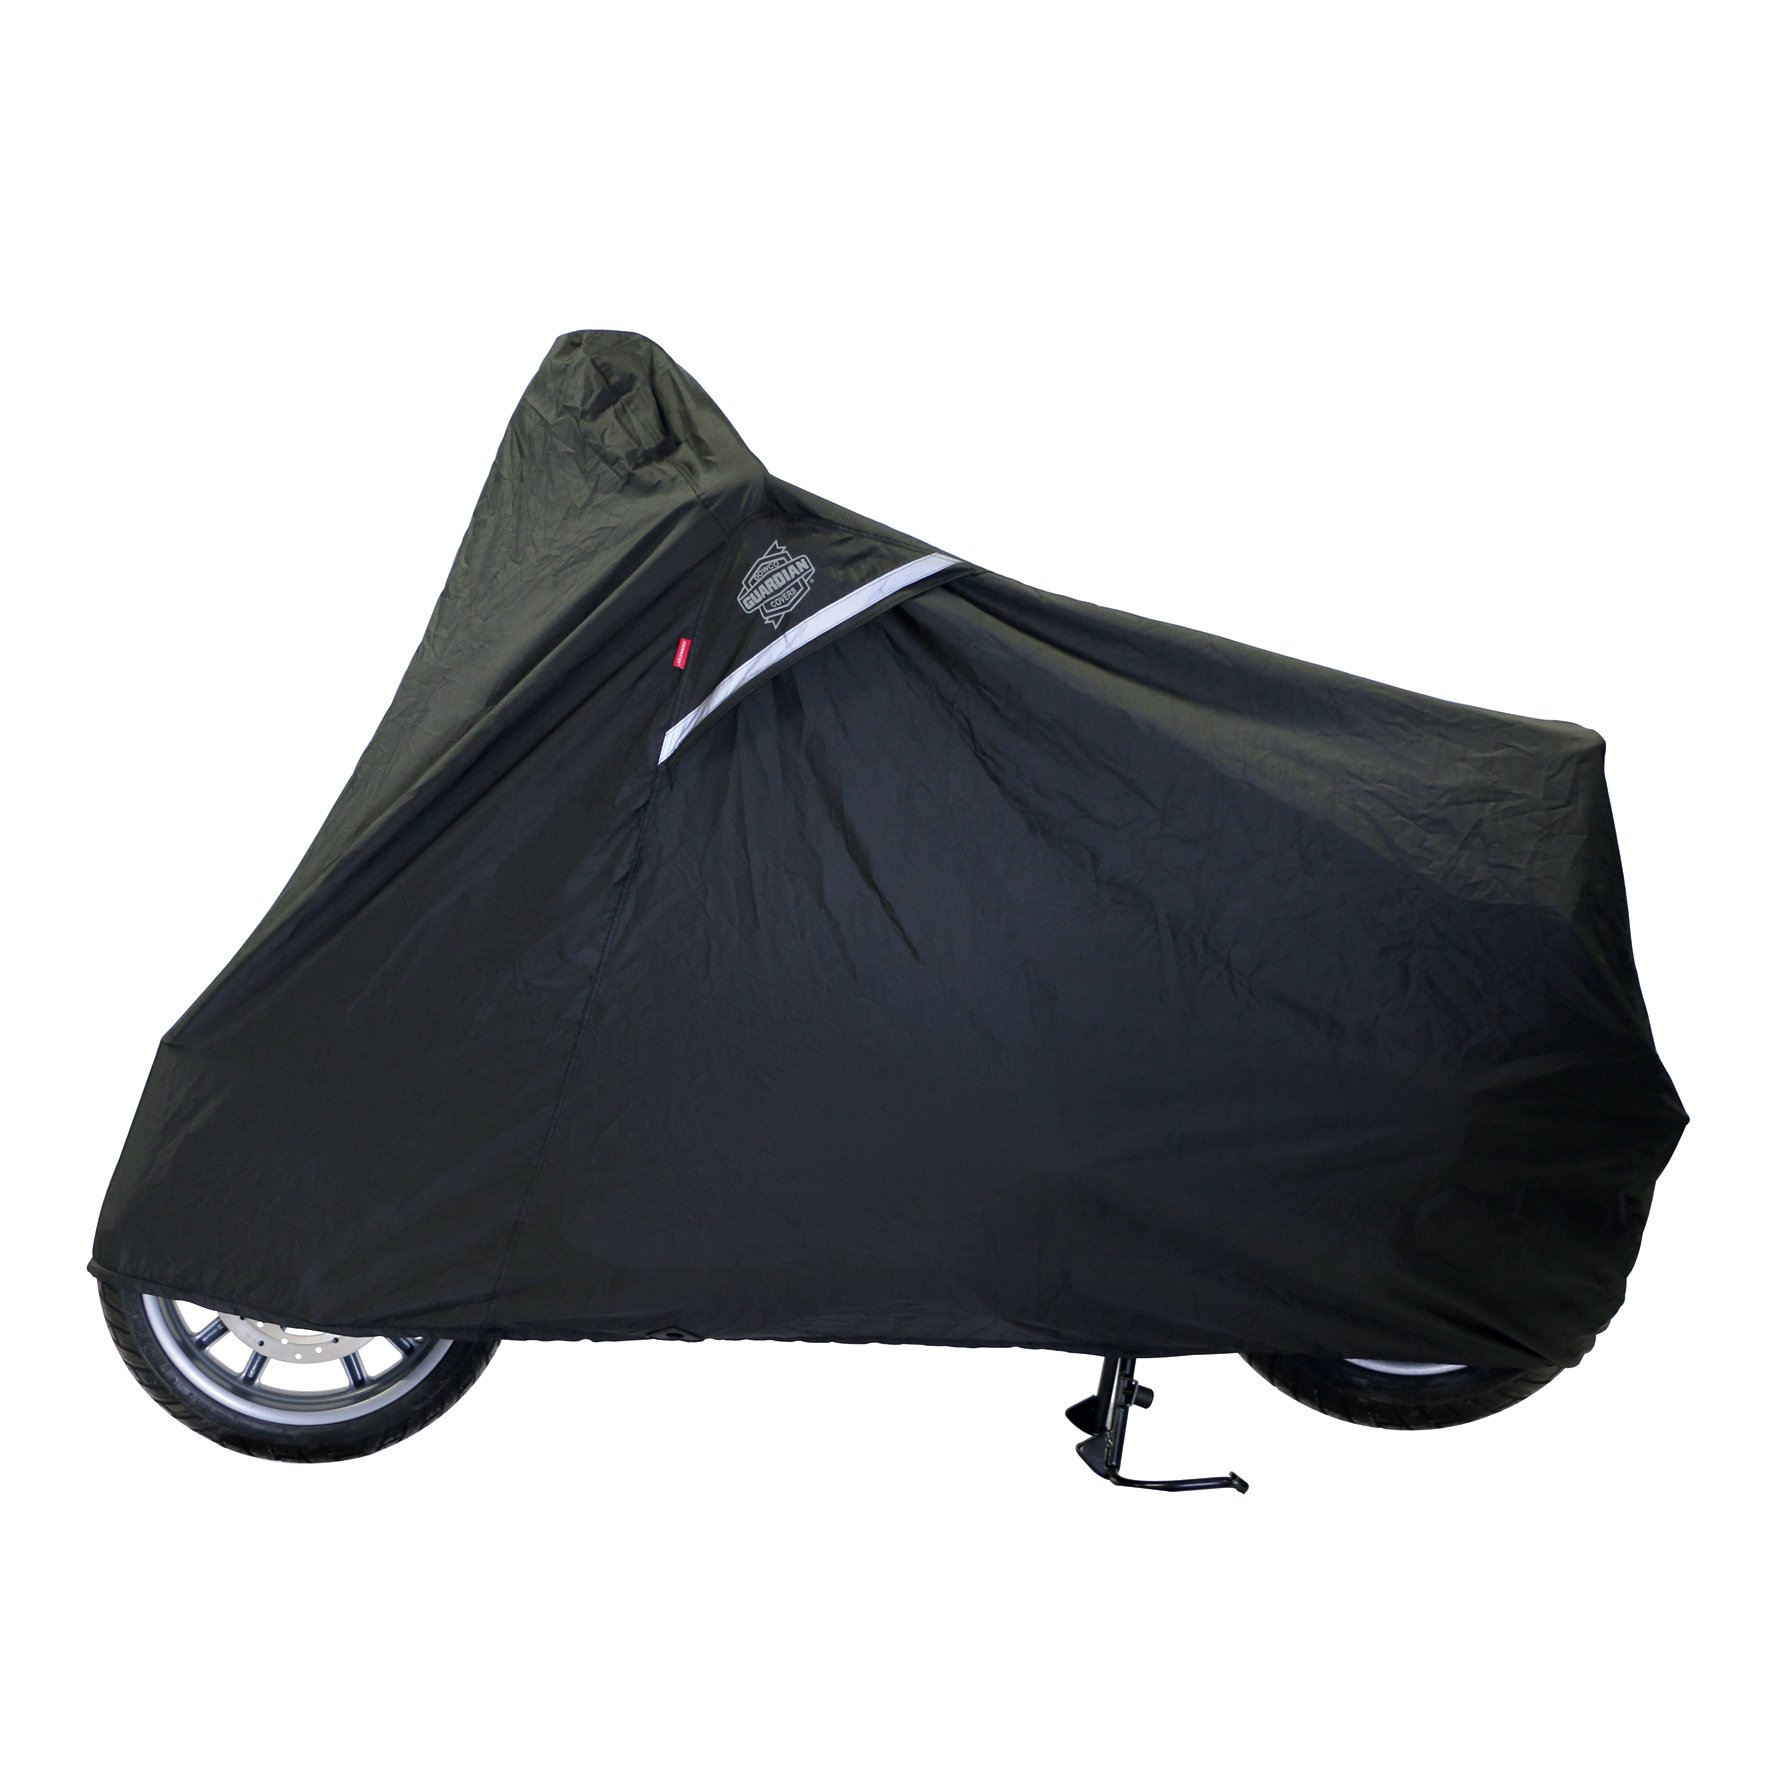 Dowco Guardian 05142 WeatherAll Plus Indoor/Outdoor Waterproof Motorcycle Cover: Black, Large Scooter by Dowco